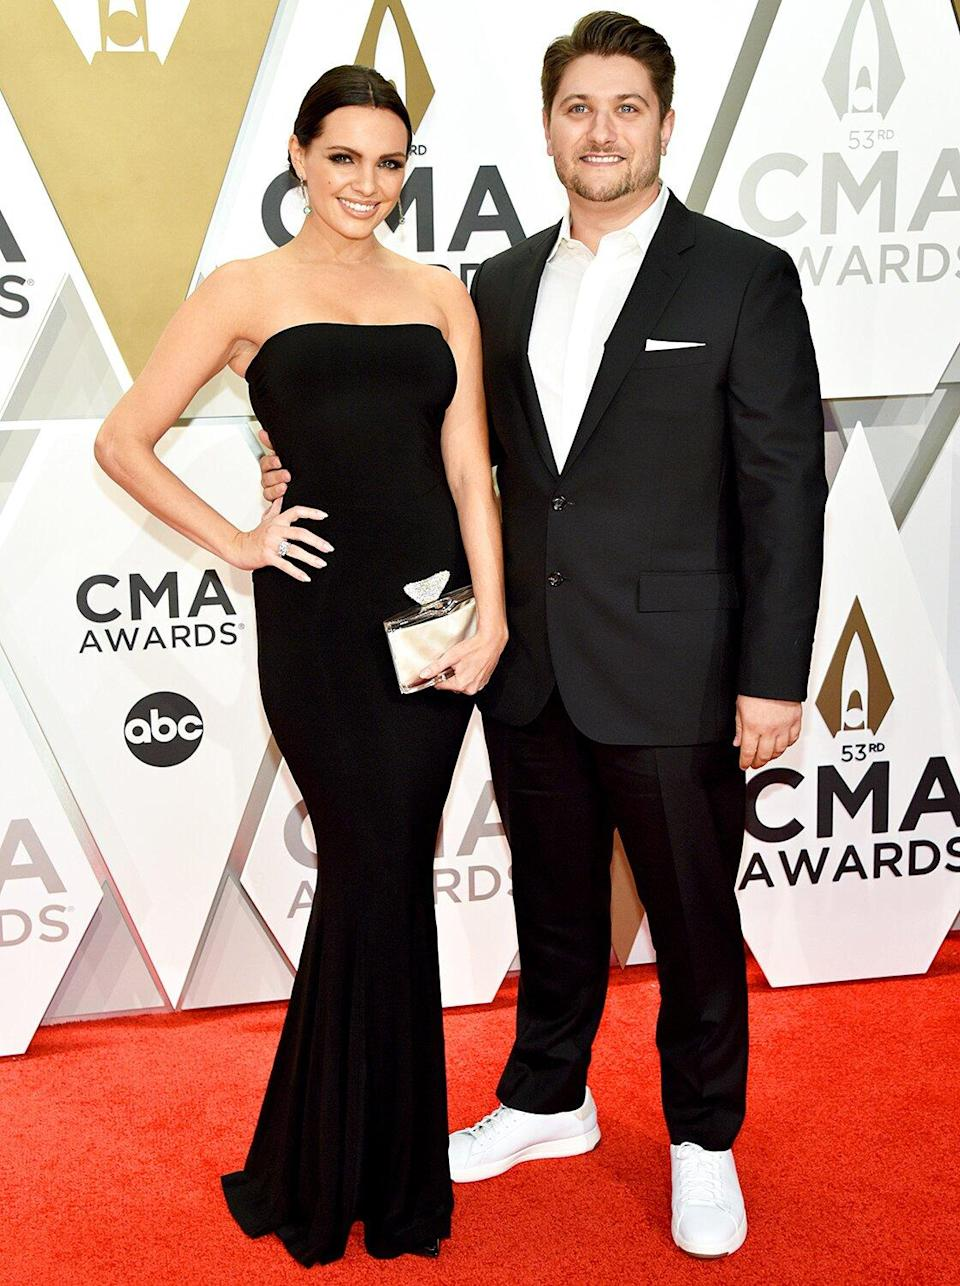 Renee Blair and Jordan Schmidt attend the 53rd annual CMA Awards at the Music City Center on November 13, 2019 in Nashville, Tennessee.